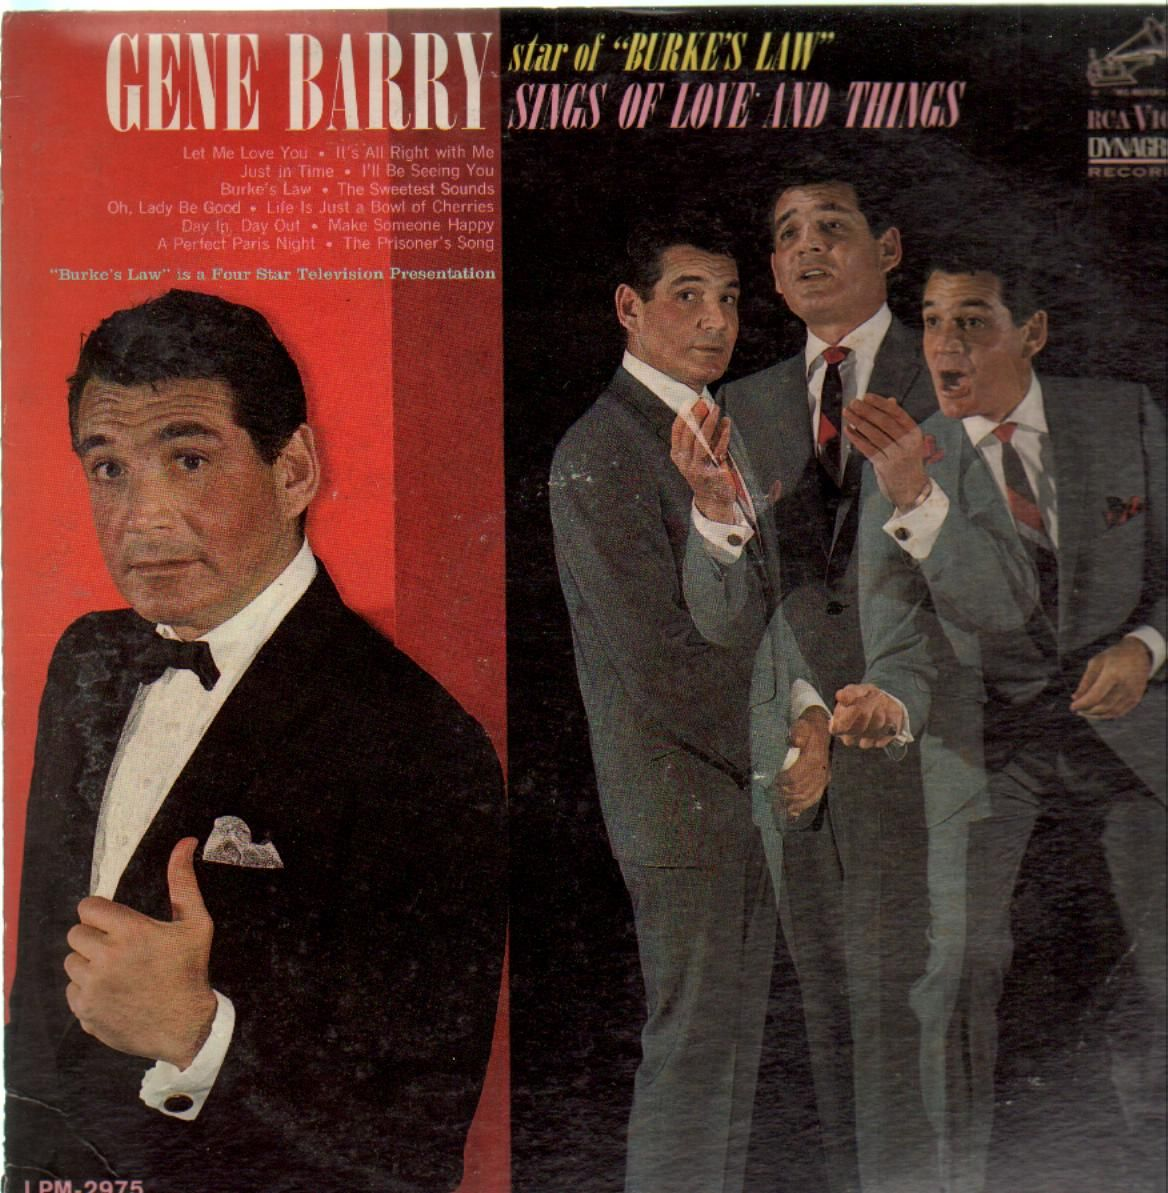 Barry, Gene Sings Of Love And Things